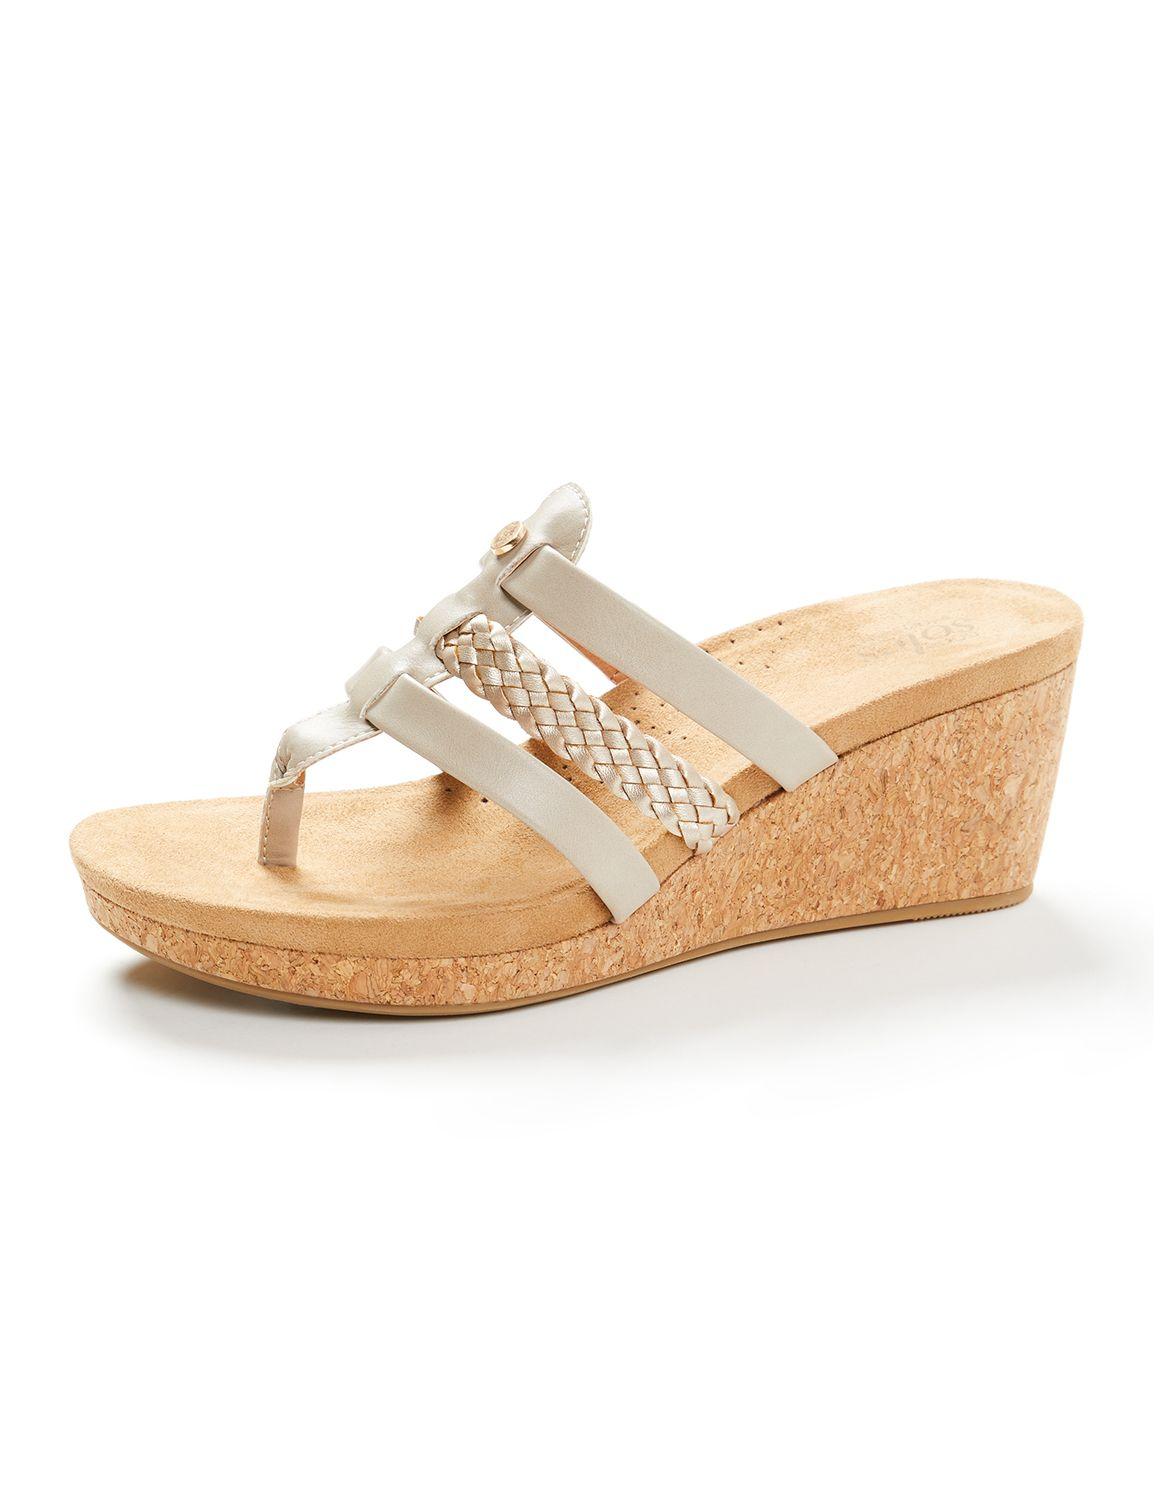 Good Soles Boardwalk Wedge Sandal Cork Wedge w/ Three Straps Wedge WL MP-300097411